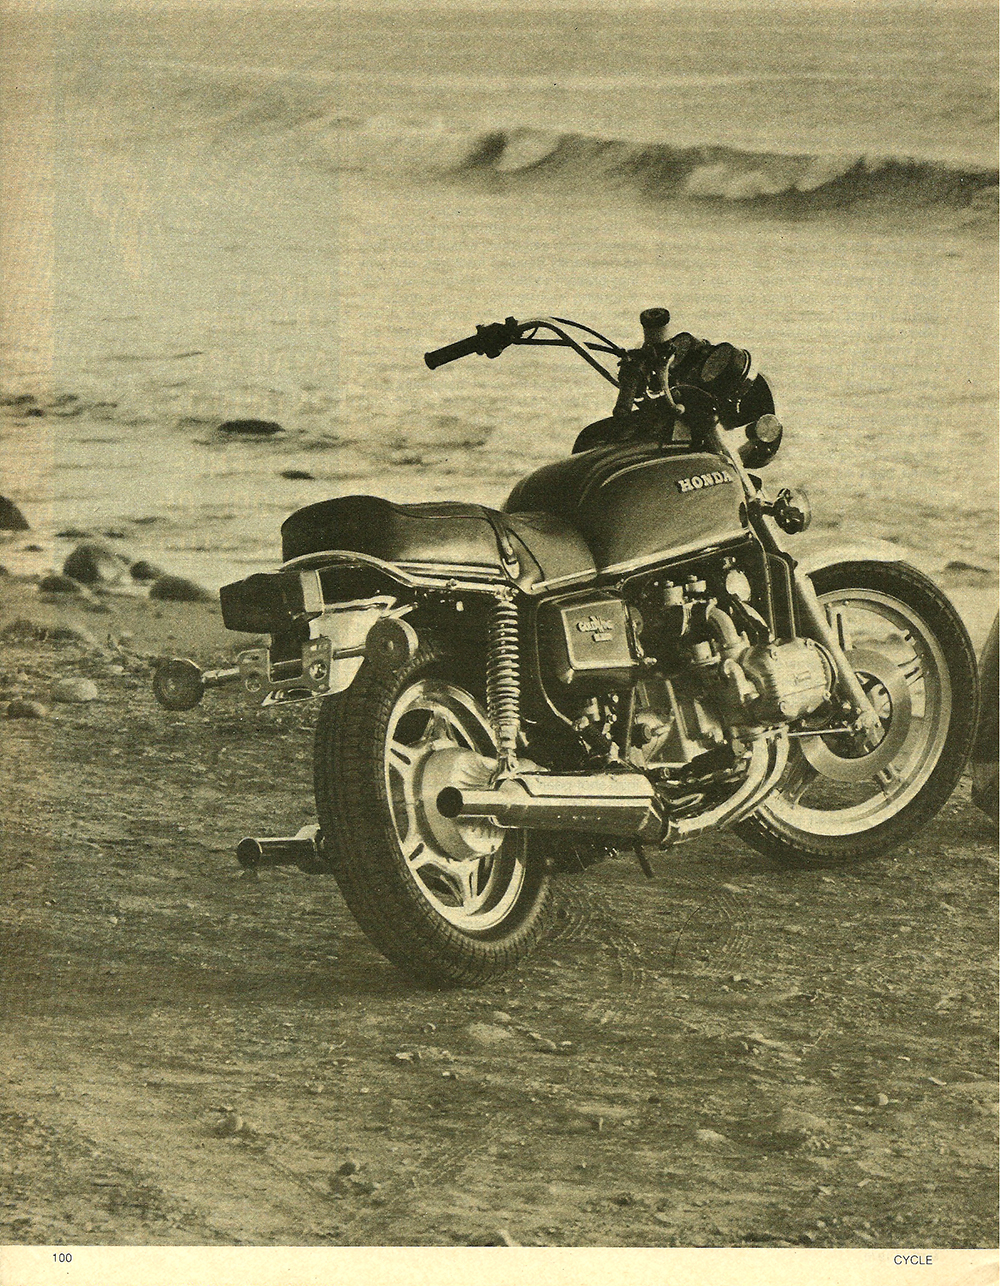 1978 Honda GL1000 road test 01.jpg